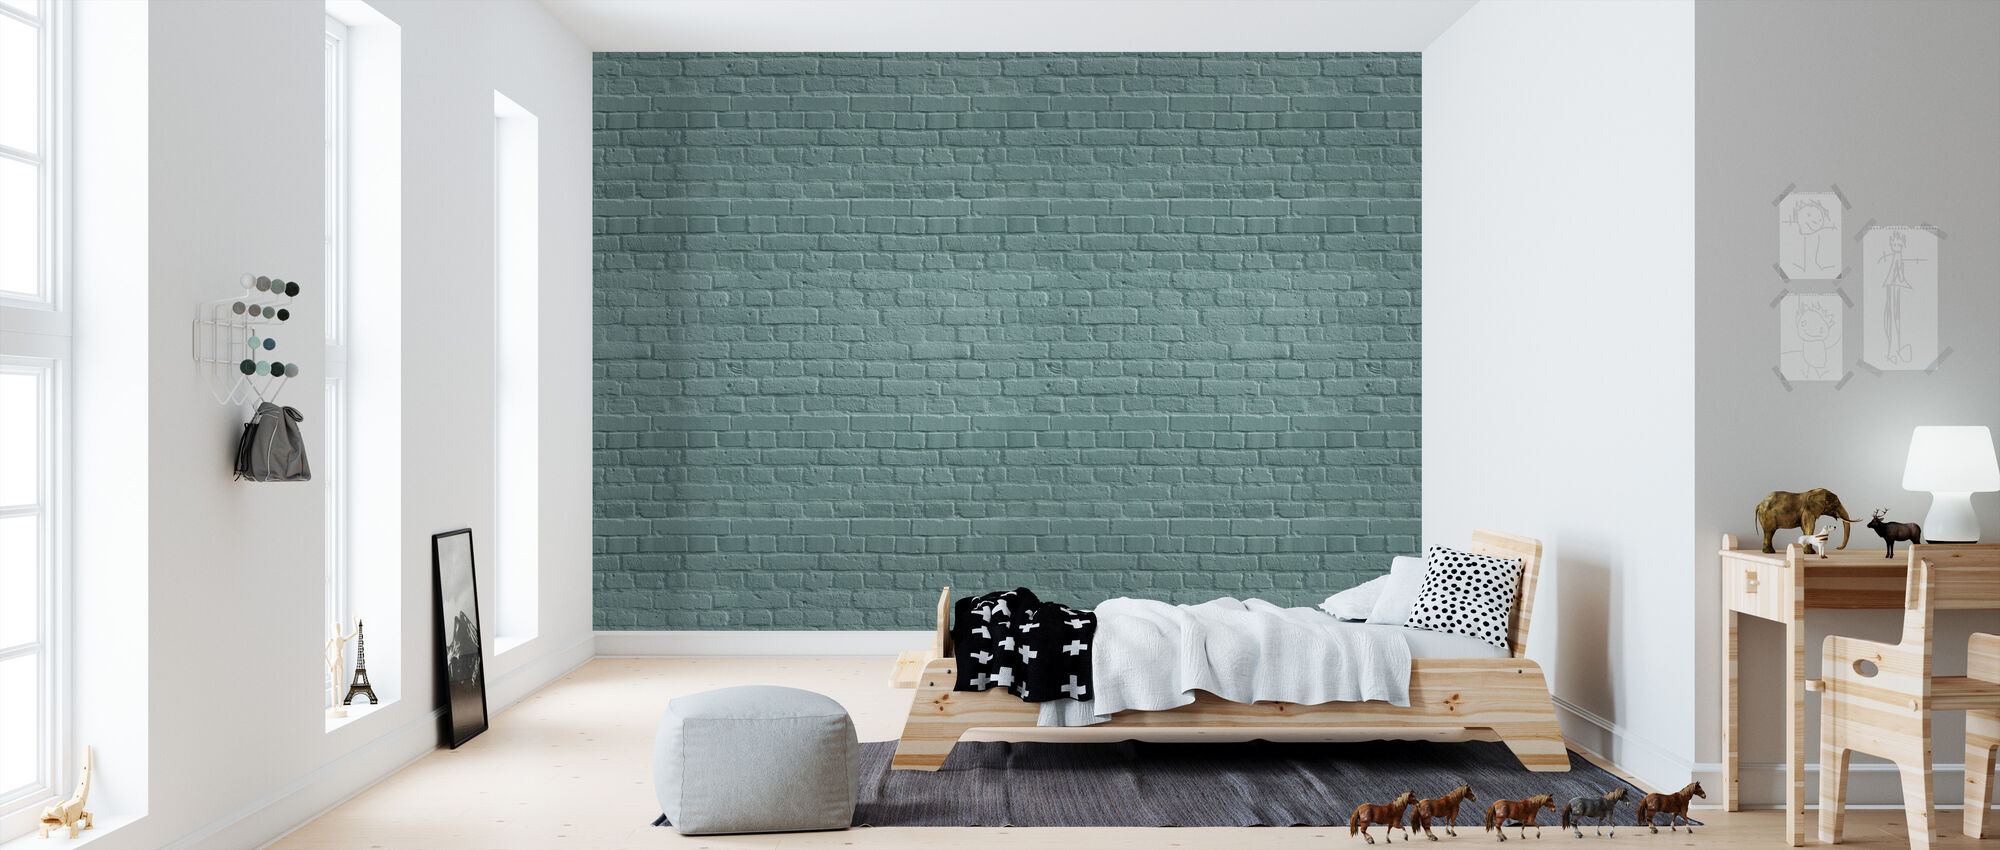 Turquoise Colored Brick Wall - Wallpaper - Kids Room